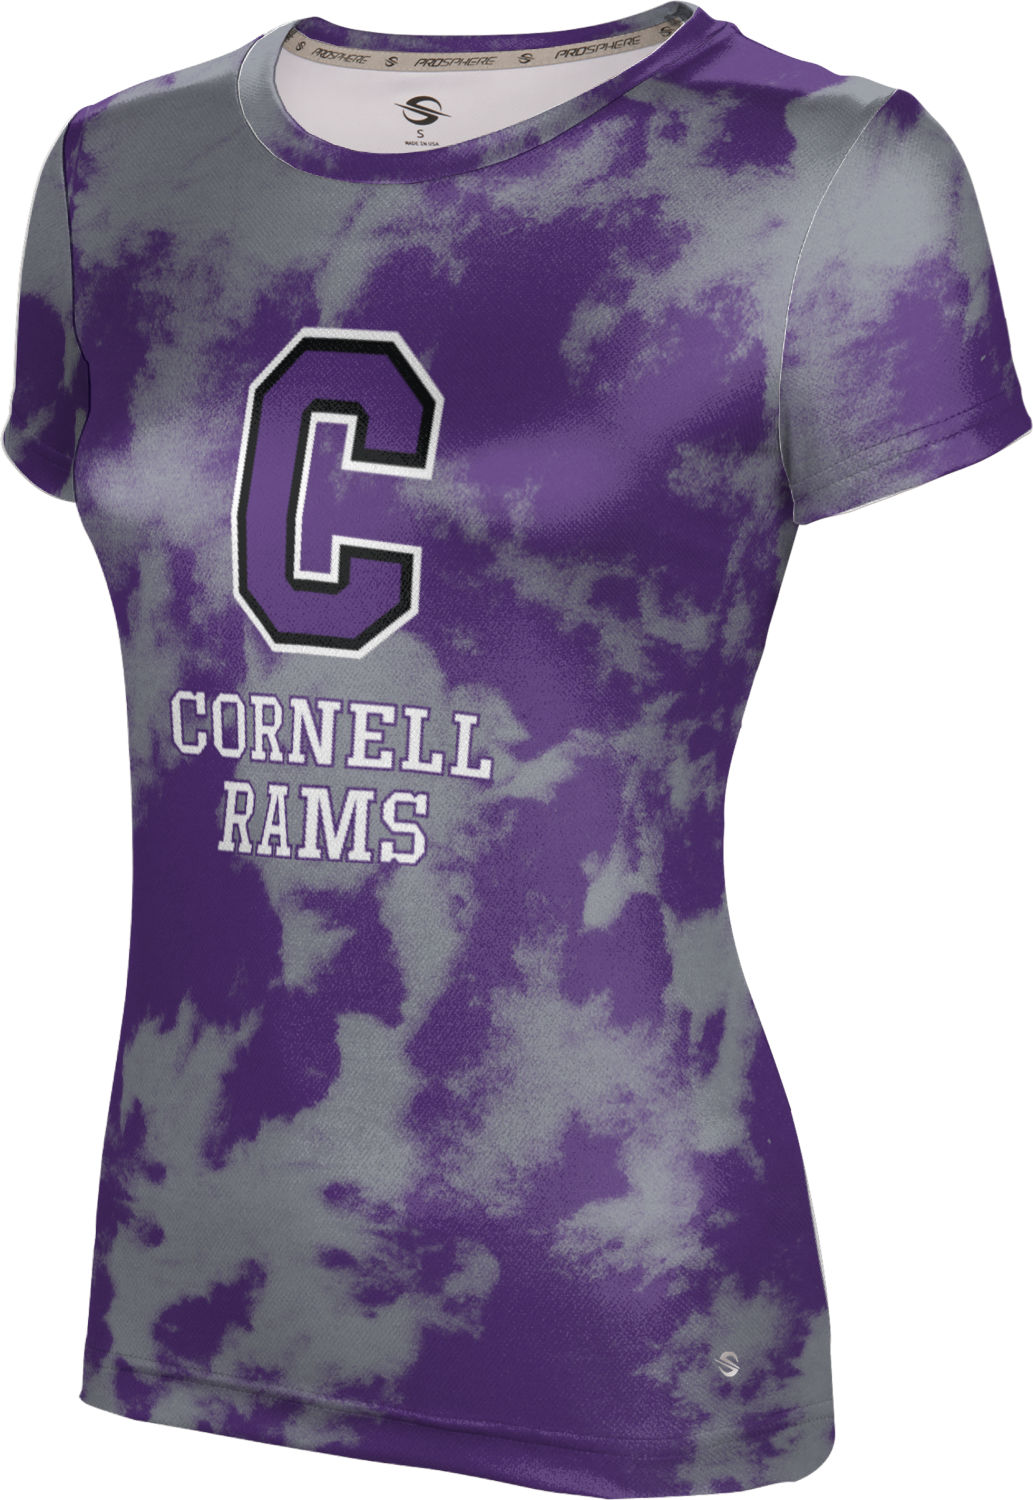 ProSphere Girls' Cornell College Grunge Tech Tee